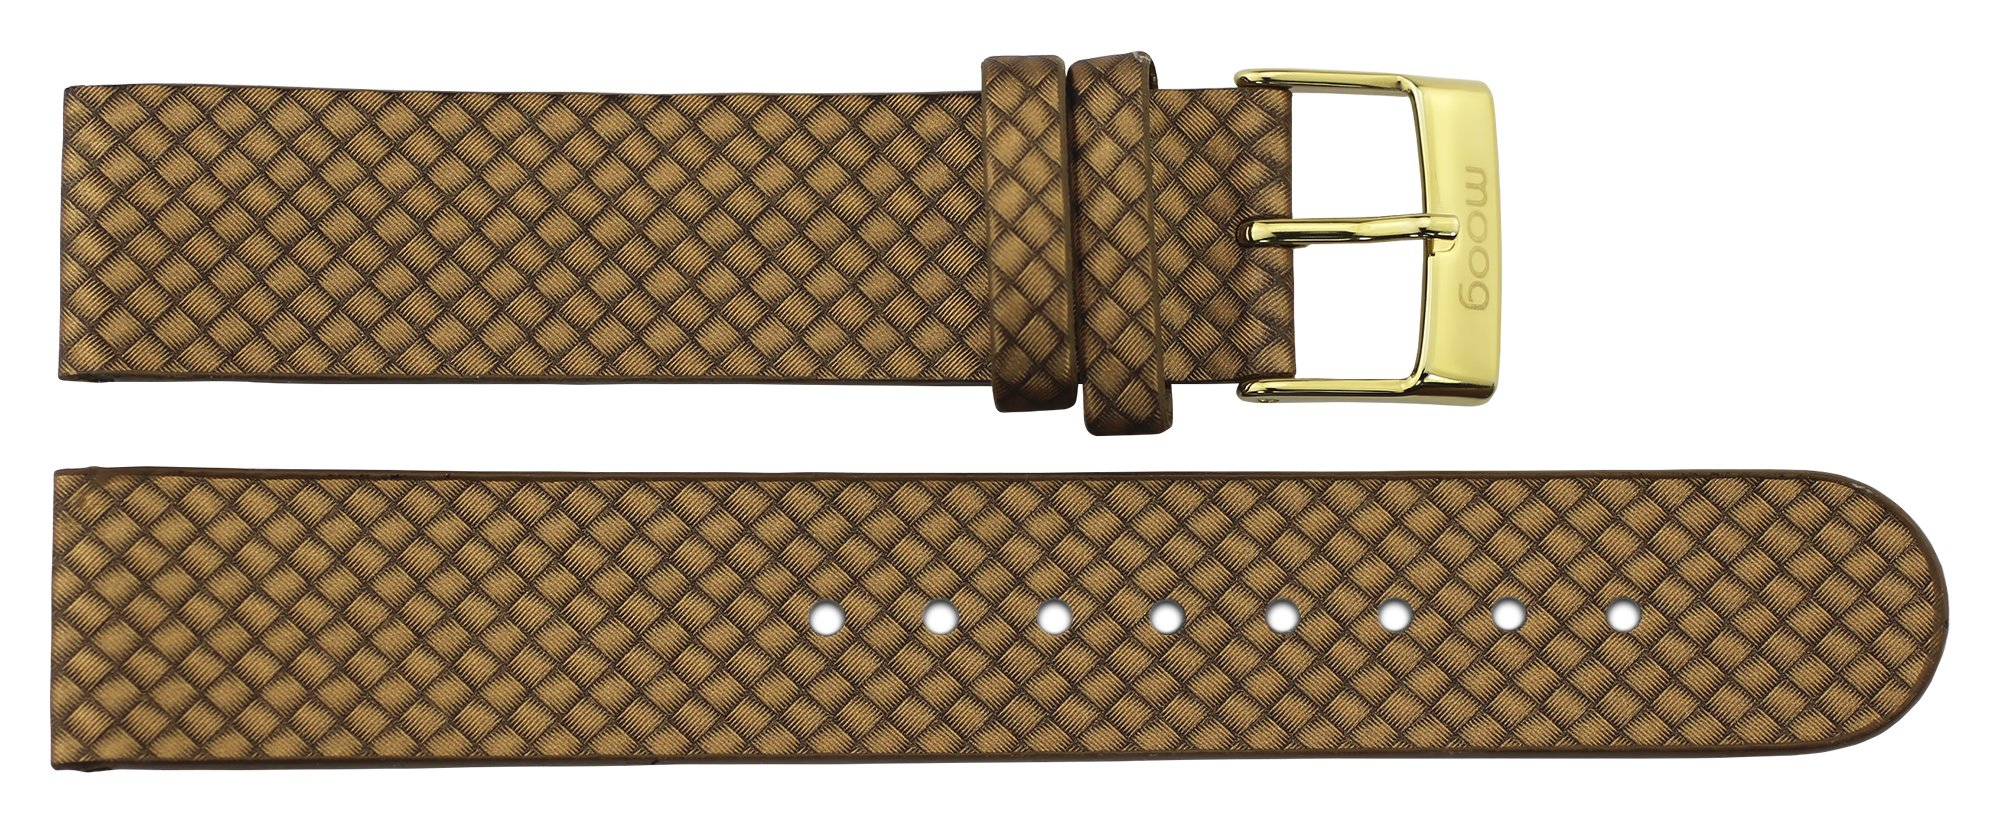 Moog Paris Gold Leather Band Replacement, Pin Clasp, 18mm Strap _ B18010